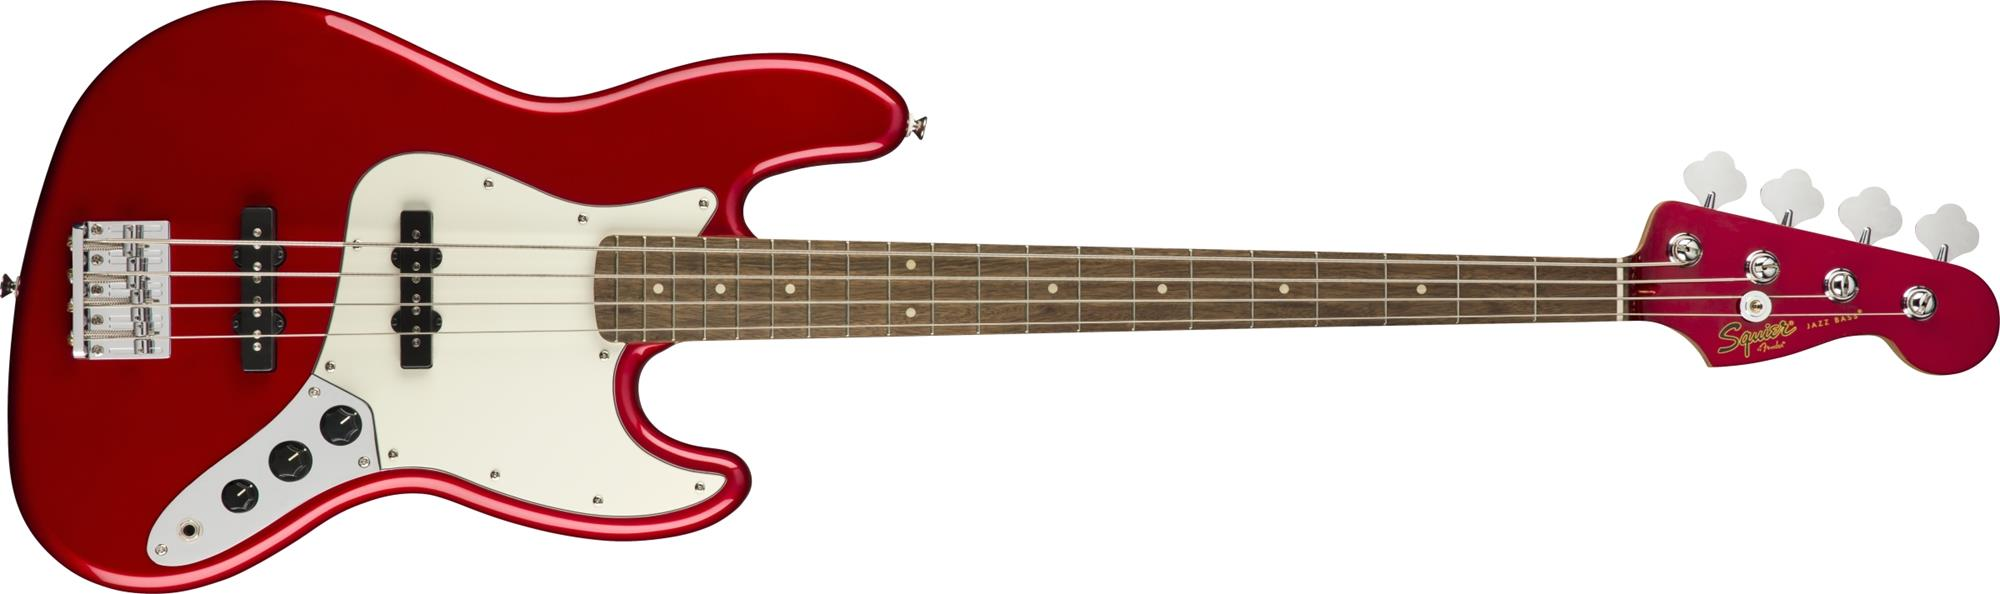 SQUIER-Contemporary-Jazz-Bass-LF-Dark-Metallic-Red-0370400525-sku-24383